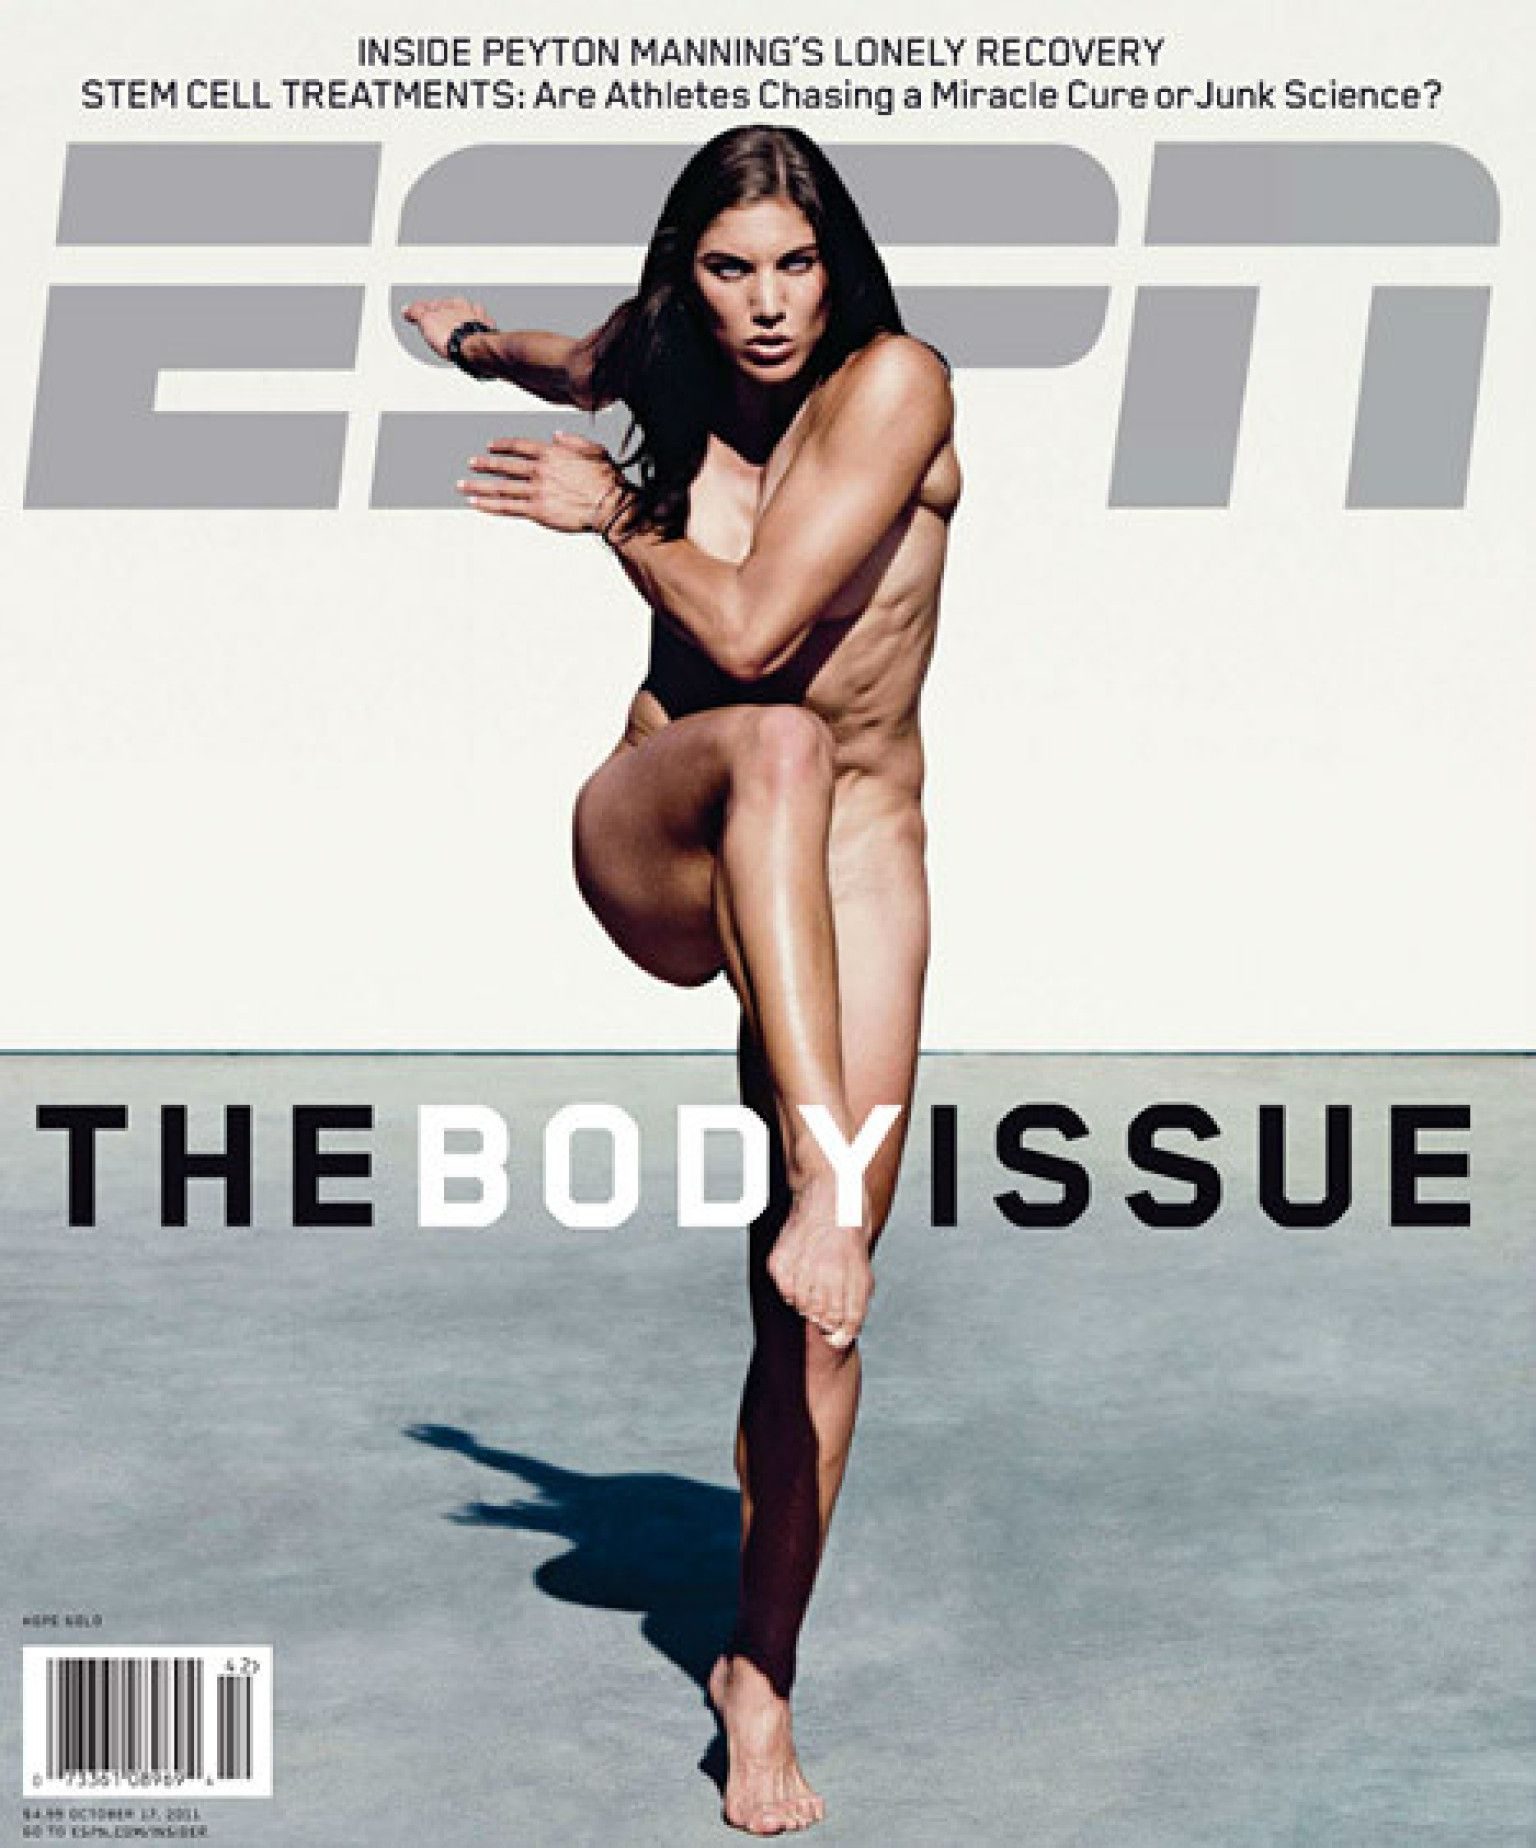 Think, nude female sports stars thank